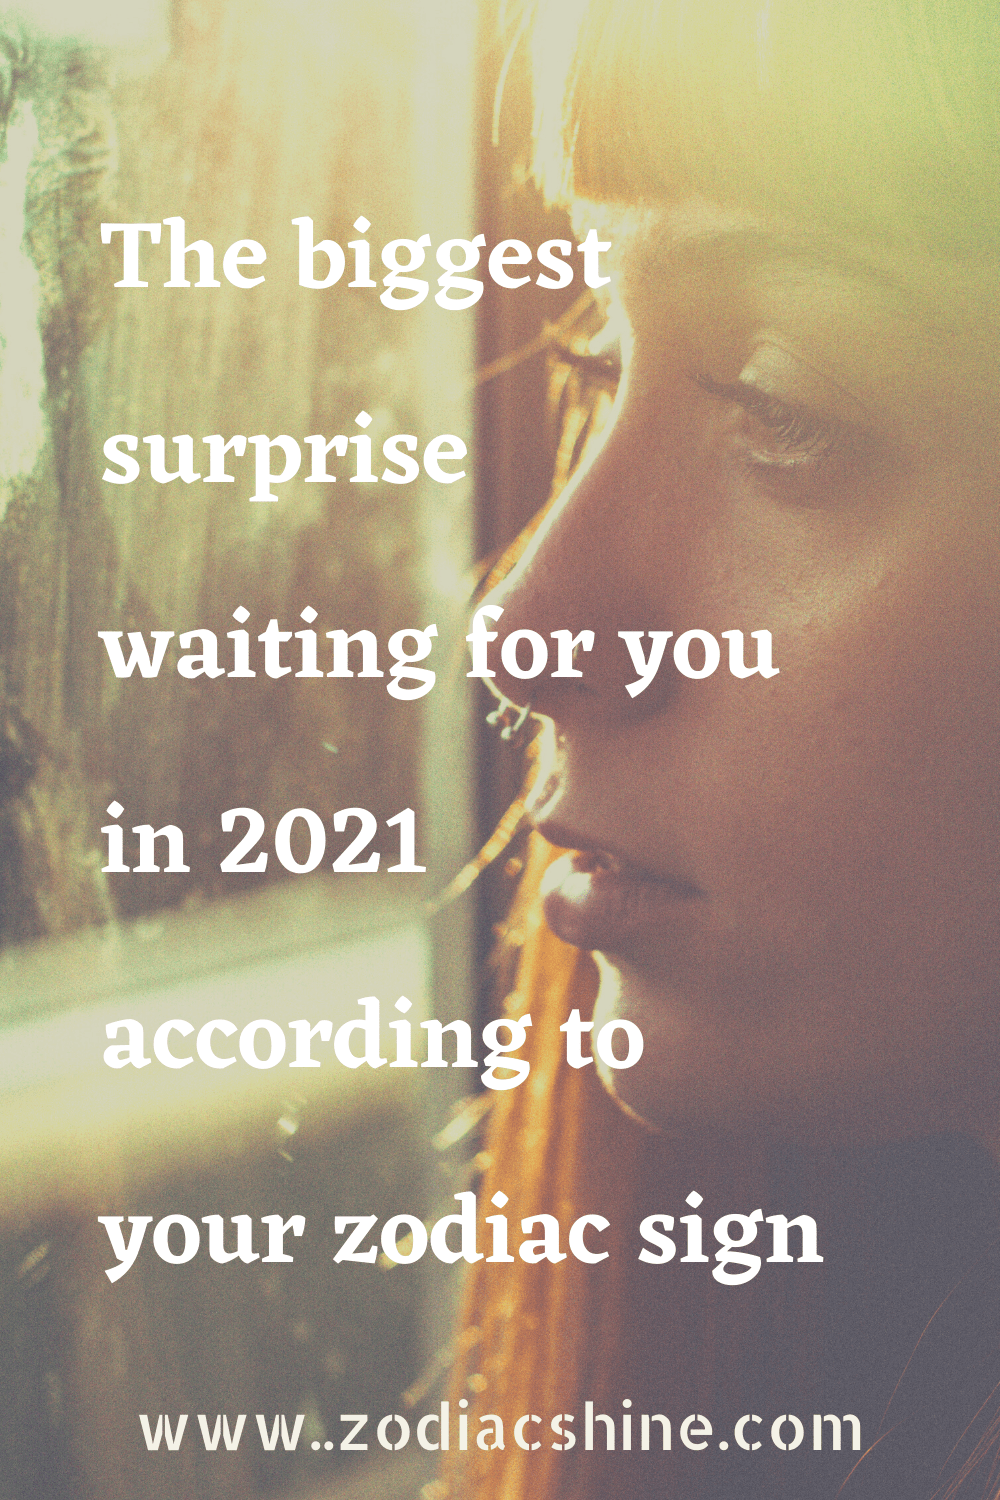 The biggest surprise waiting for you in 2021 according to your zodiac sign